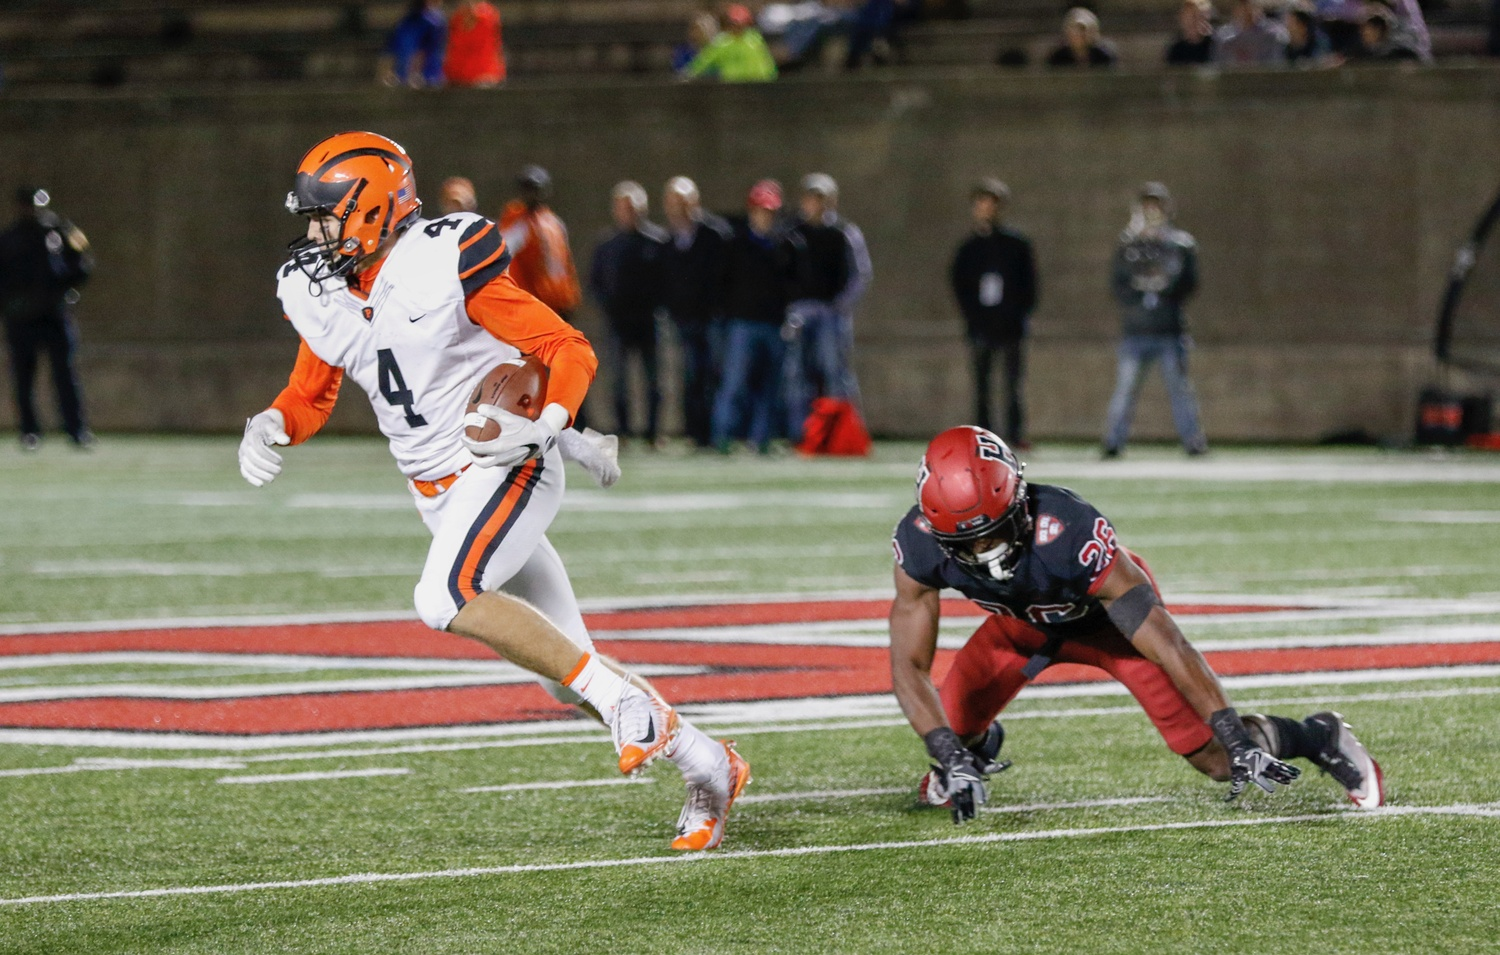 Princeton wide receiver Jesper Horsted cuts past senior defensive back Tobe Ezeokoli for a 66-yard score. In the first half, the Tigers accumulated 323 yards in the air.